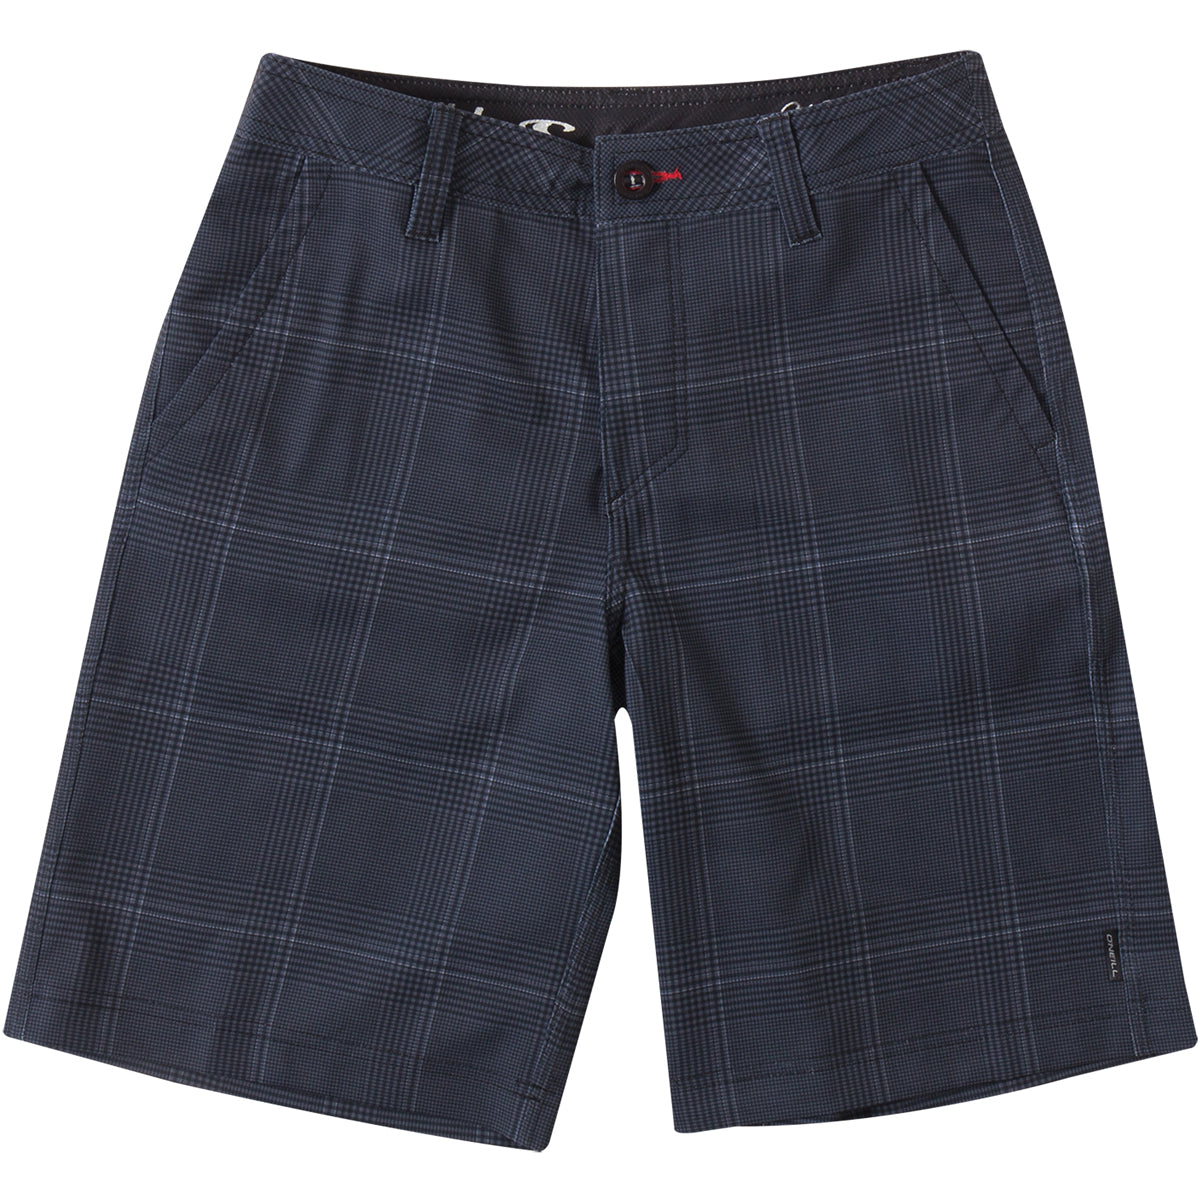 O'Neill Insider Youth Boys Boardshort Shorts-1528A013